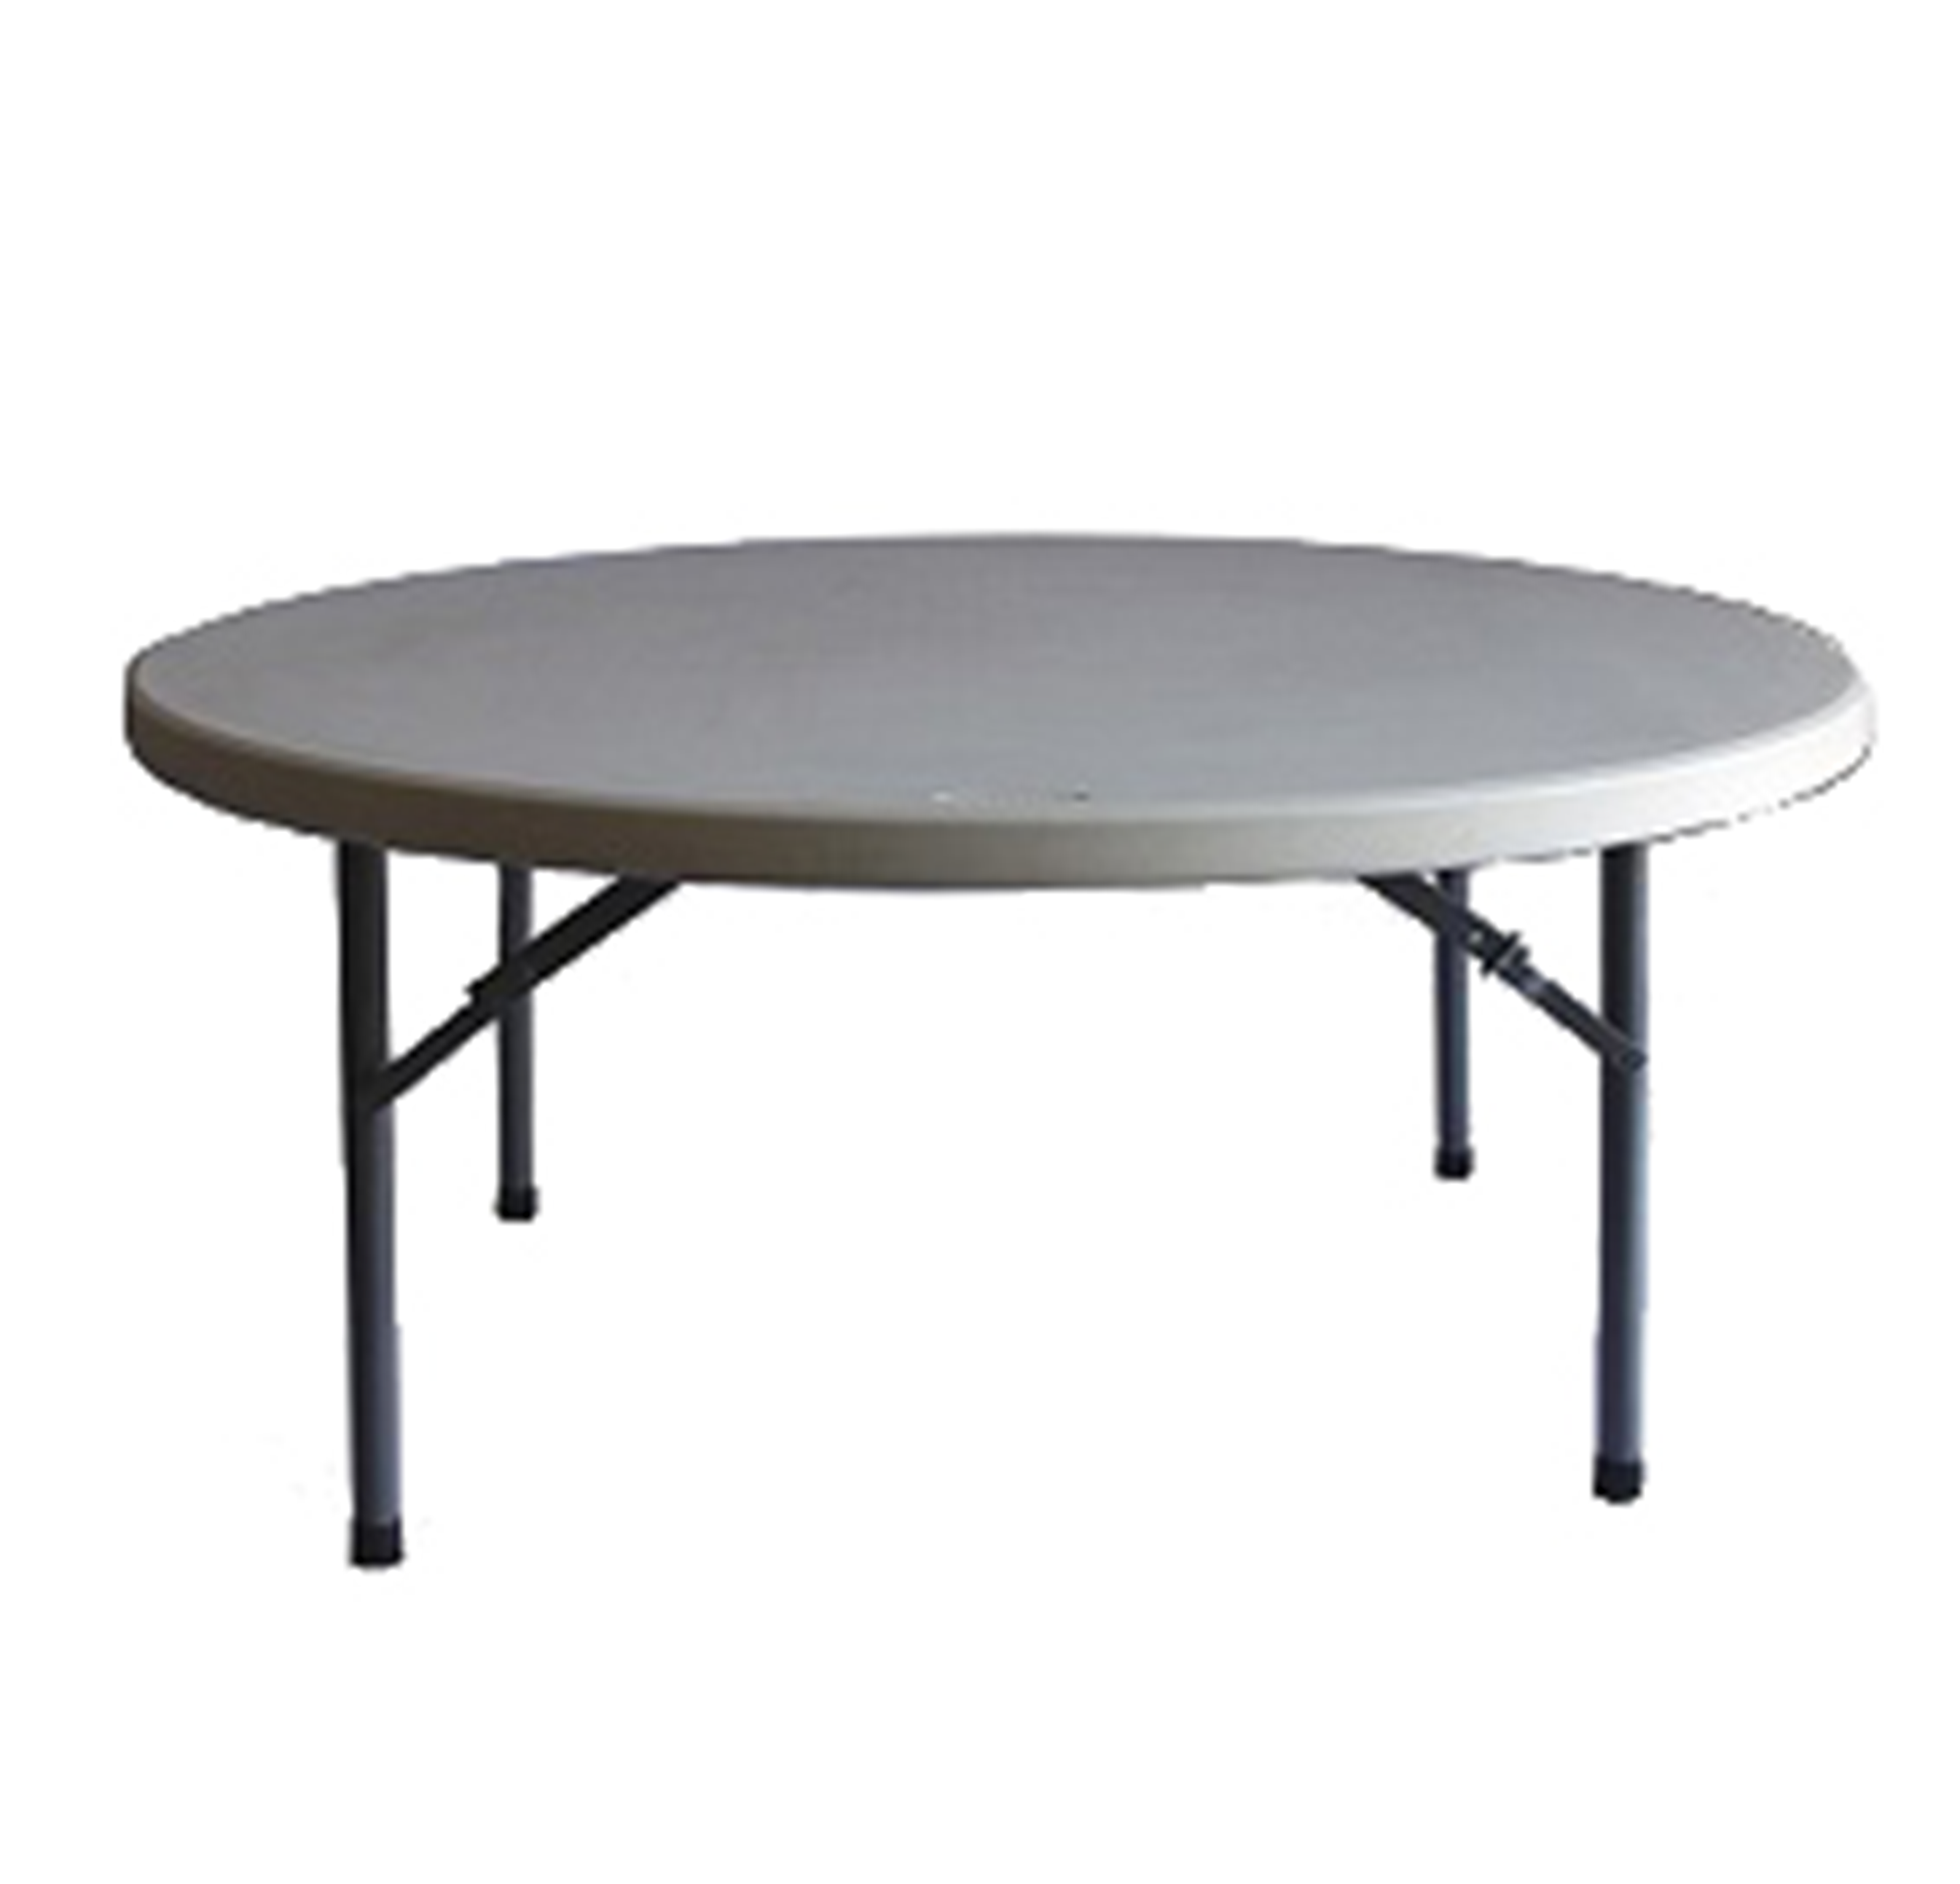 Tables Round 1 8m Round Blow Mould Trestle Table